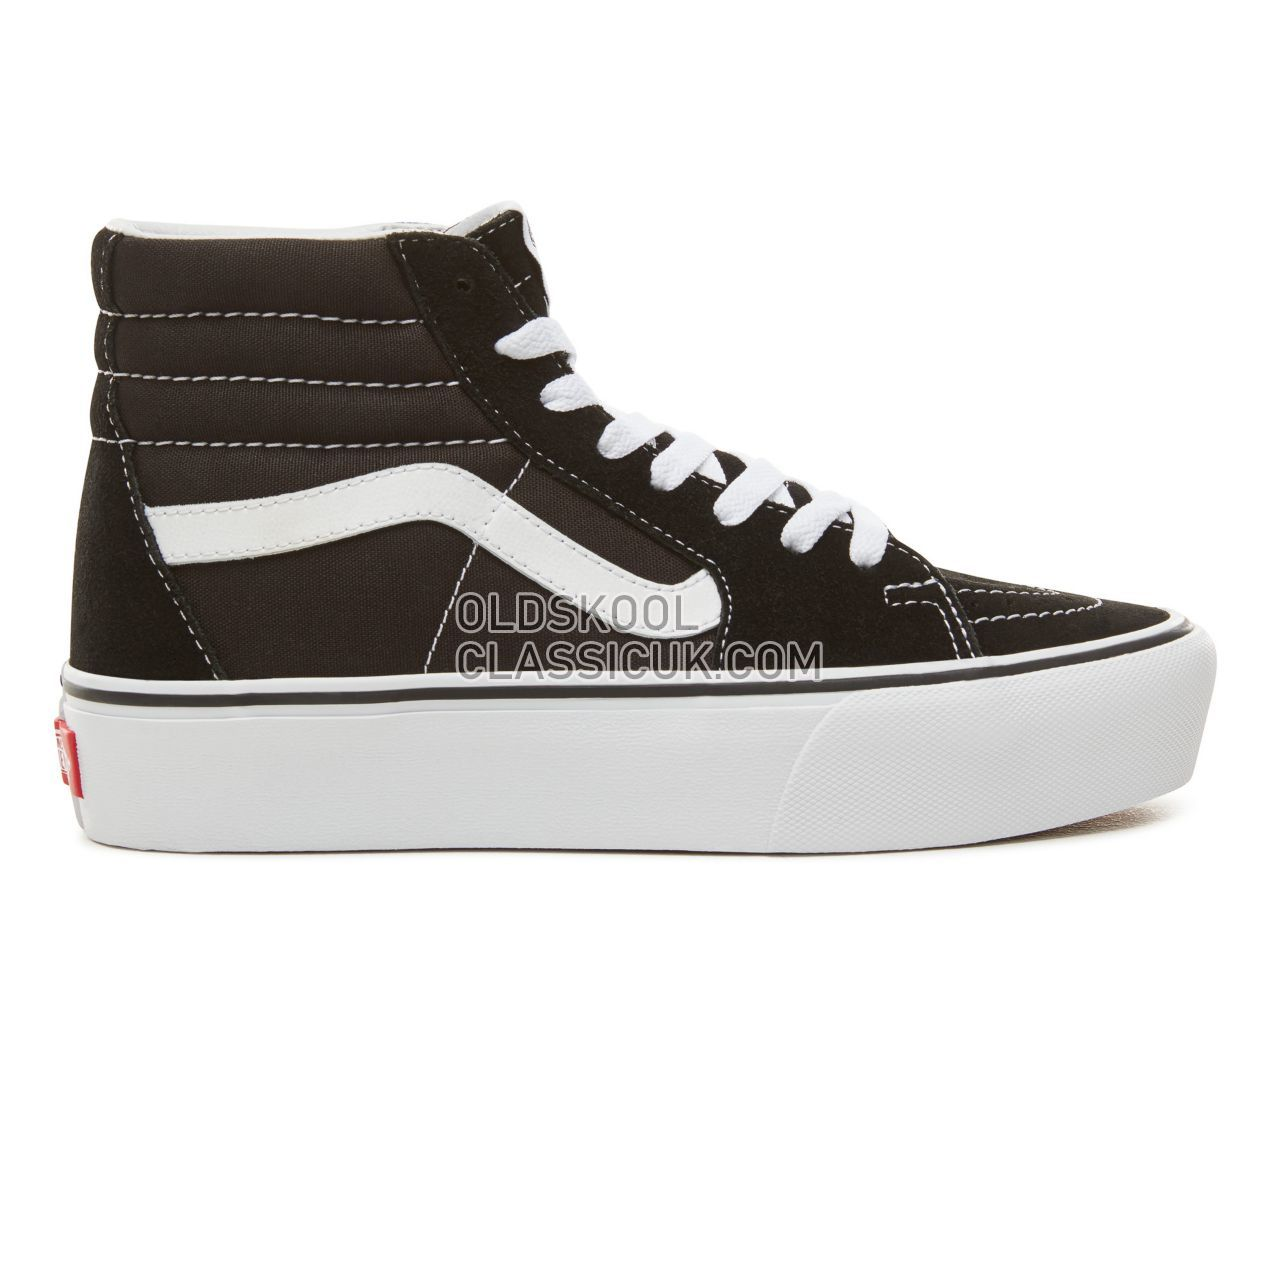 e35e6575dc69 Vans Suede Sk8-Hi Platform 2.0 Sneakers Womens Black True White VN0A3TKN6BT  Shoes ...